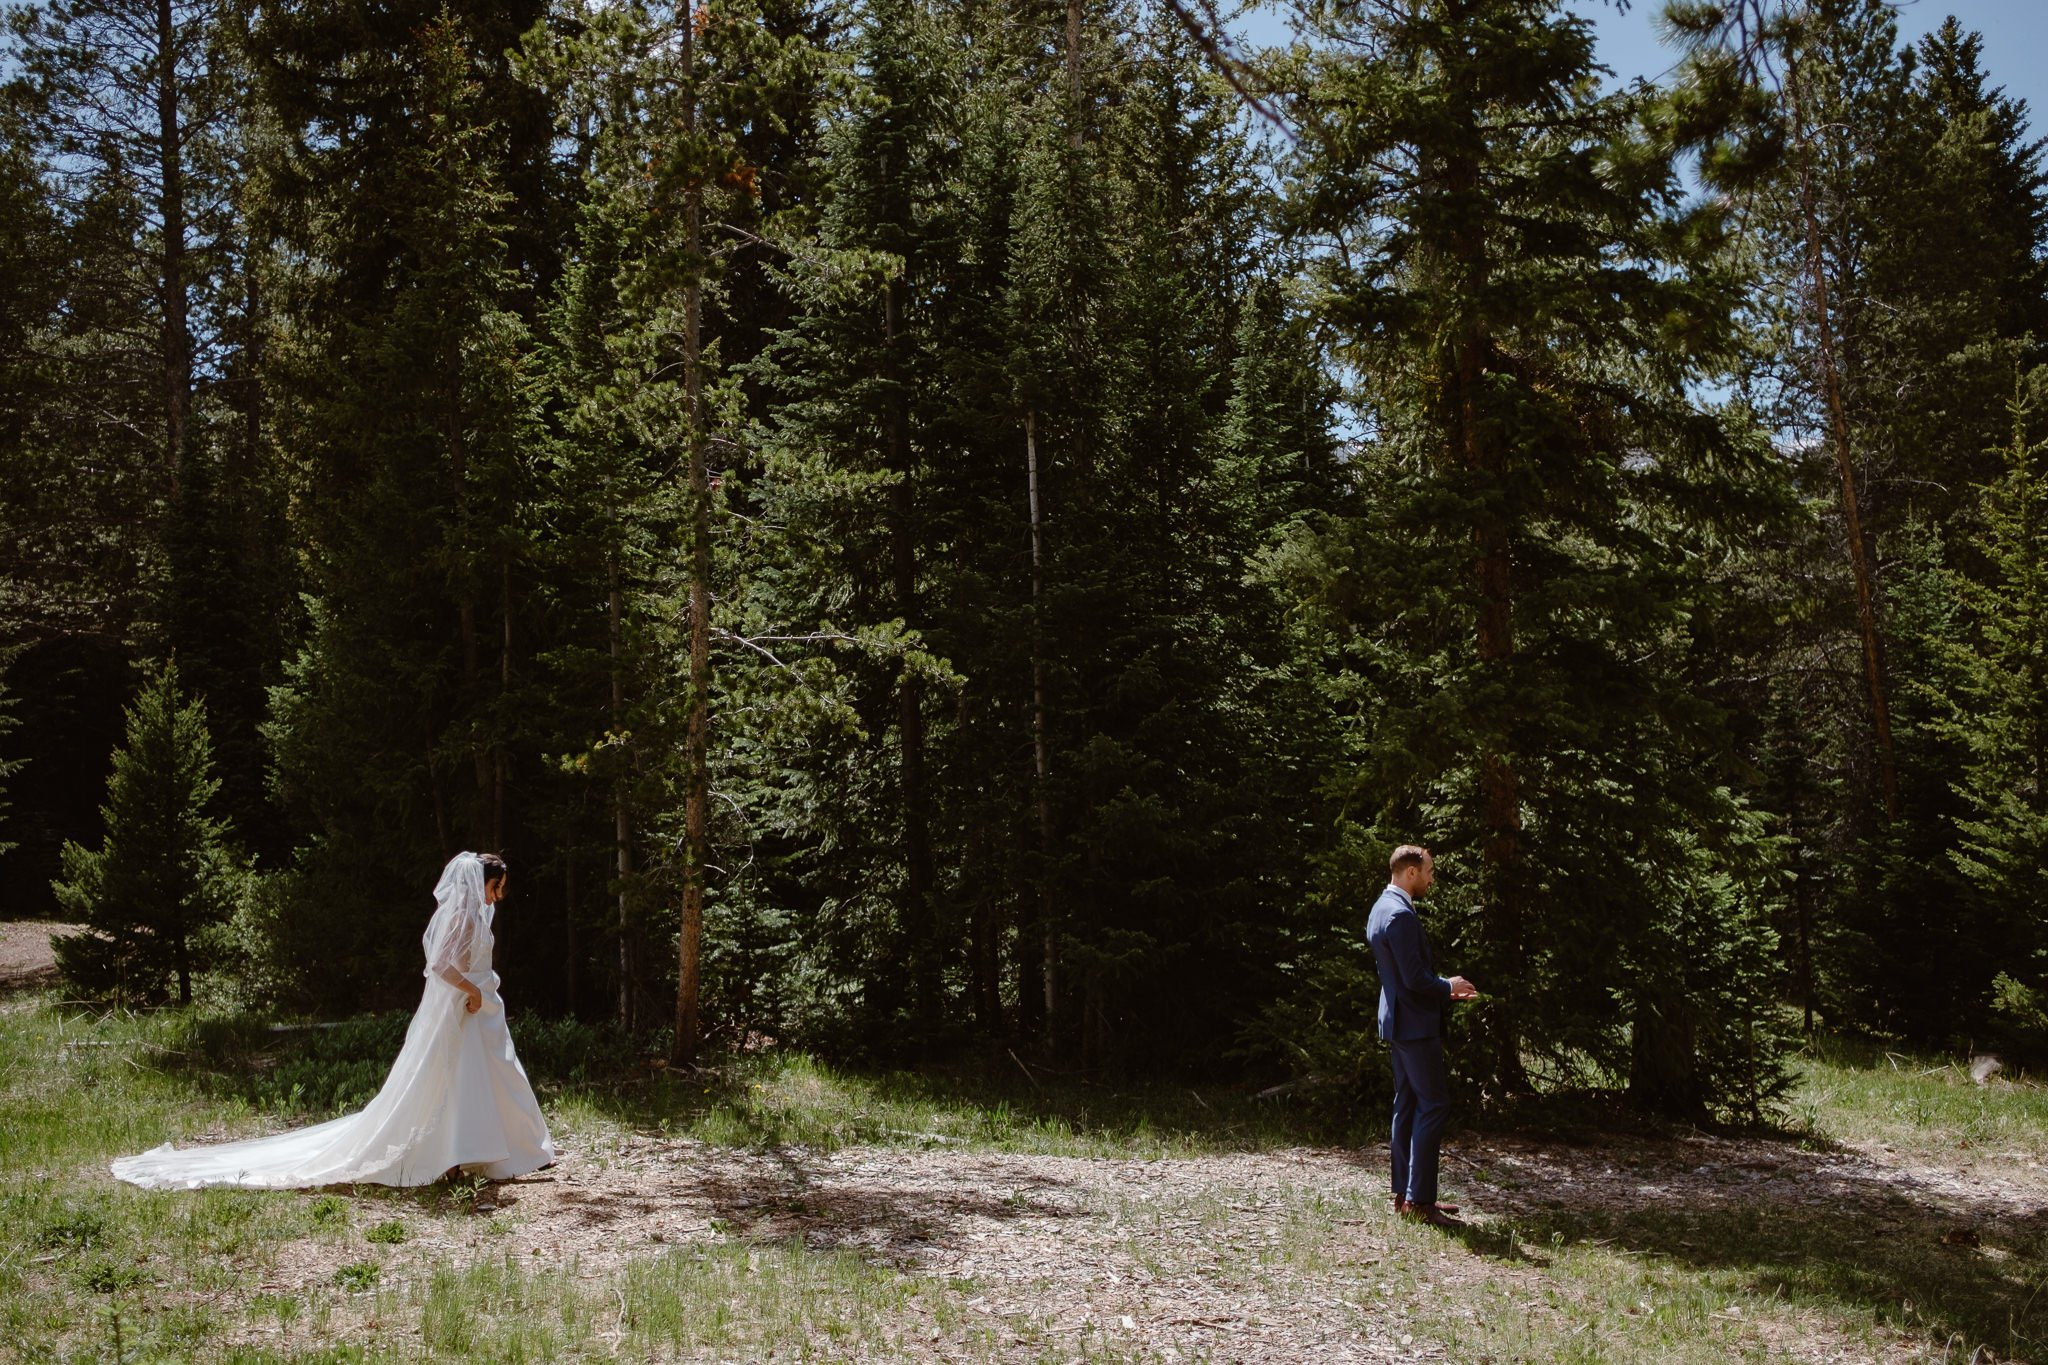 Bride and groom first look in the woods at Breckenridge Nordic Center wedding, Summit County wedding photographer